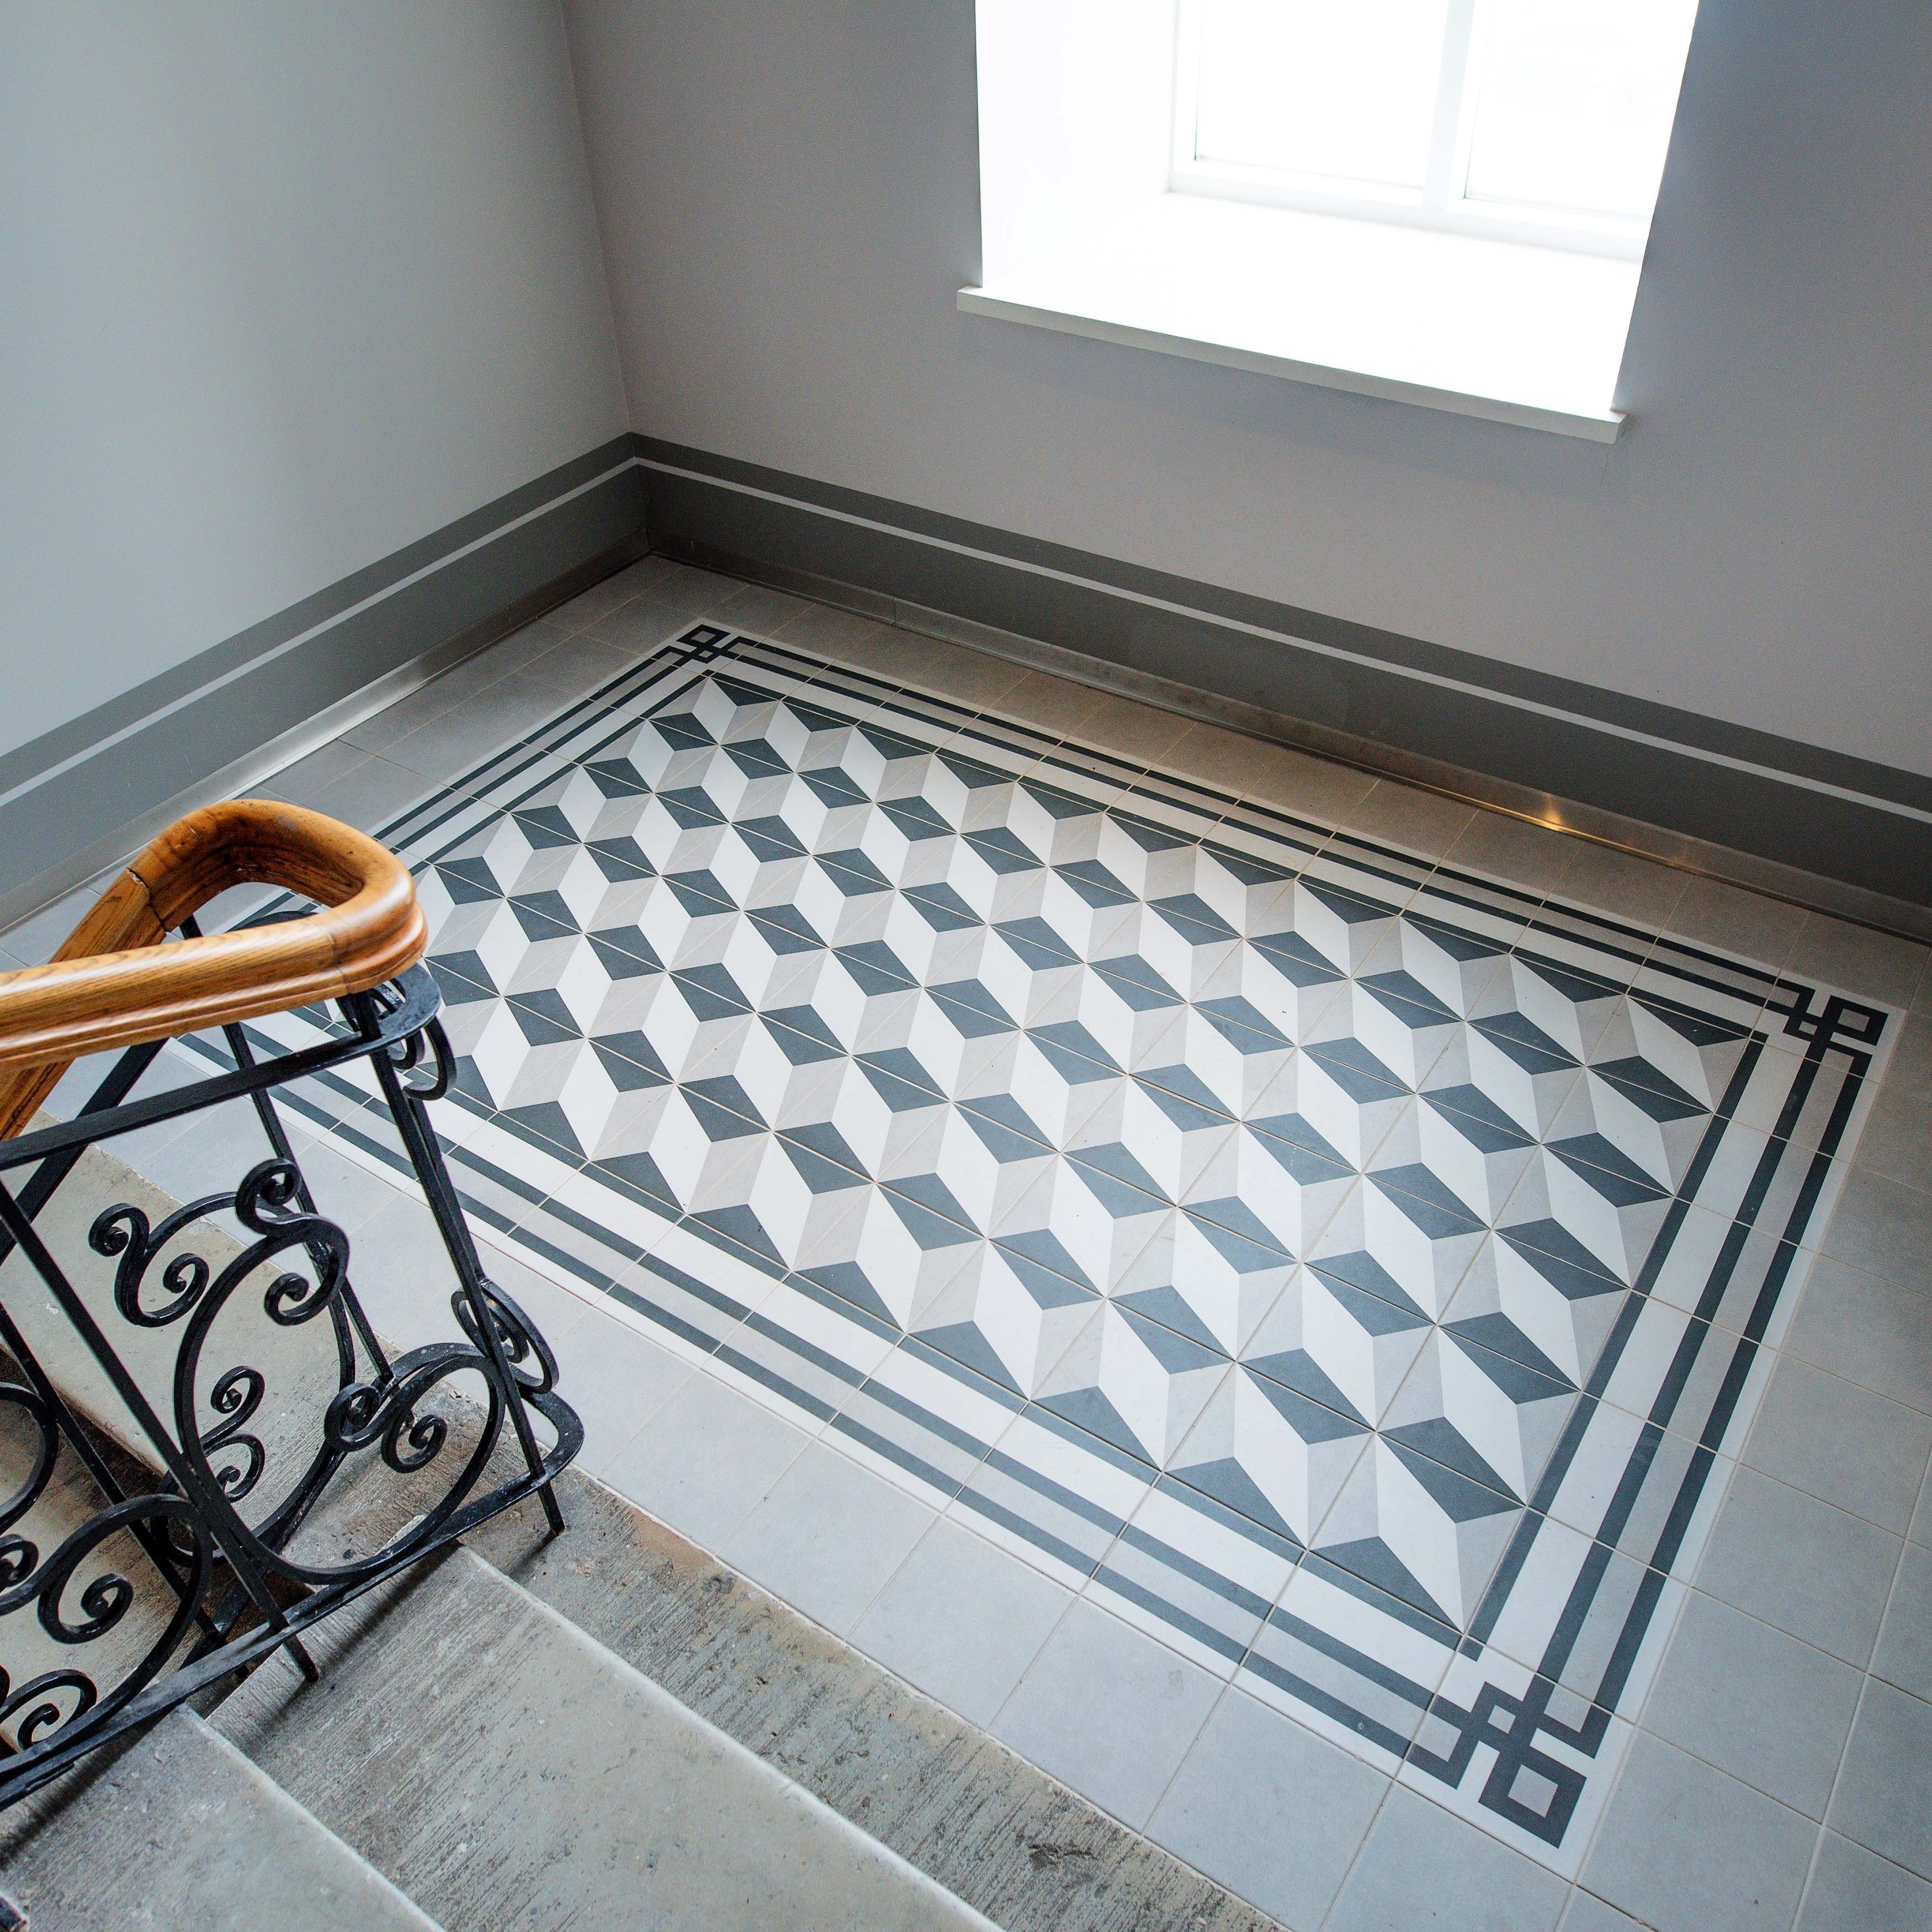 Shop SomerTile 7.75x7.75-inch Thirties Grey Ceramic Floor and Wall ...